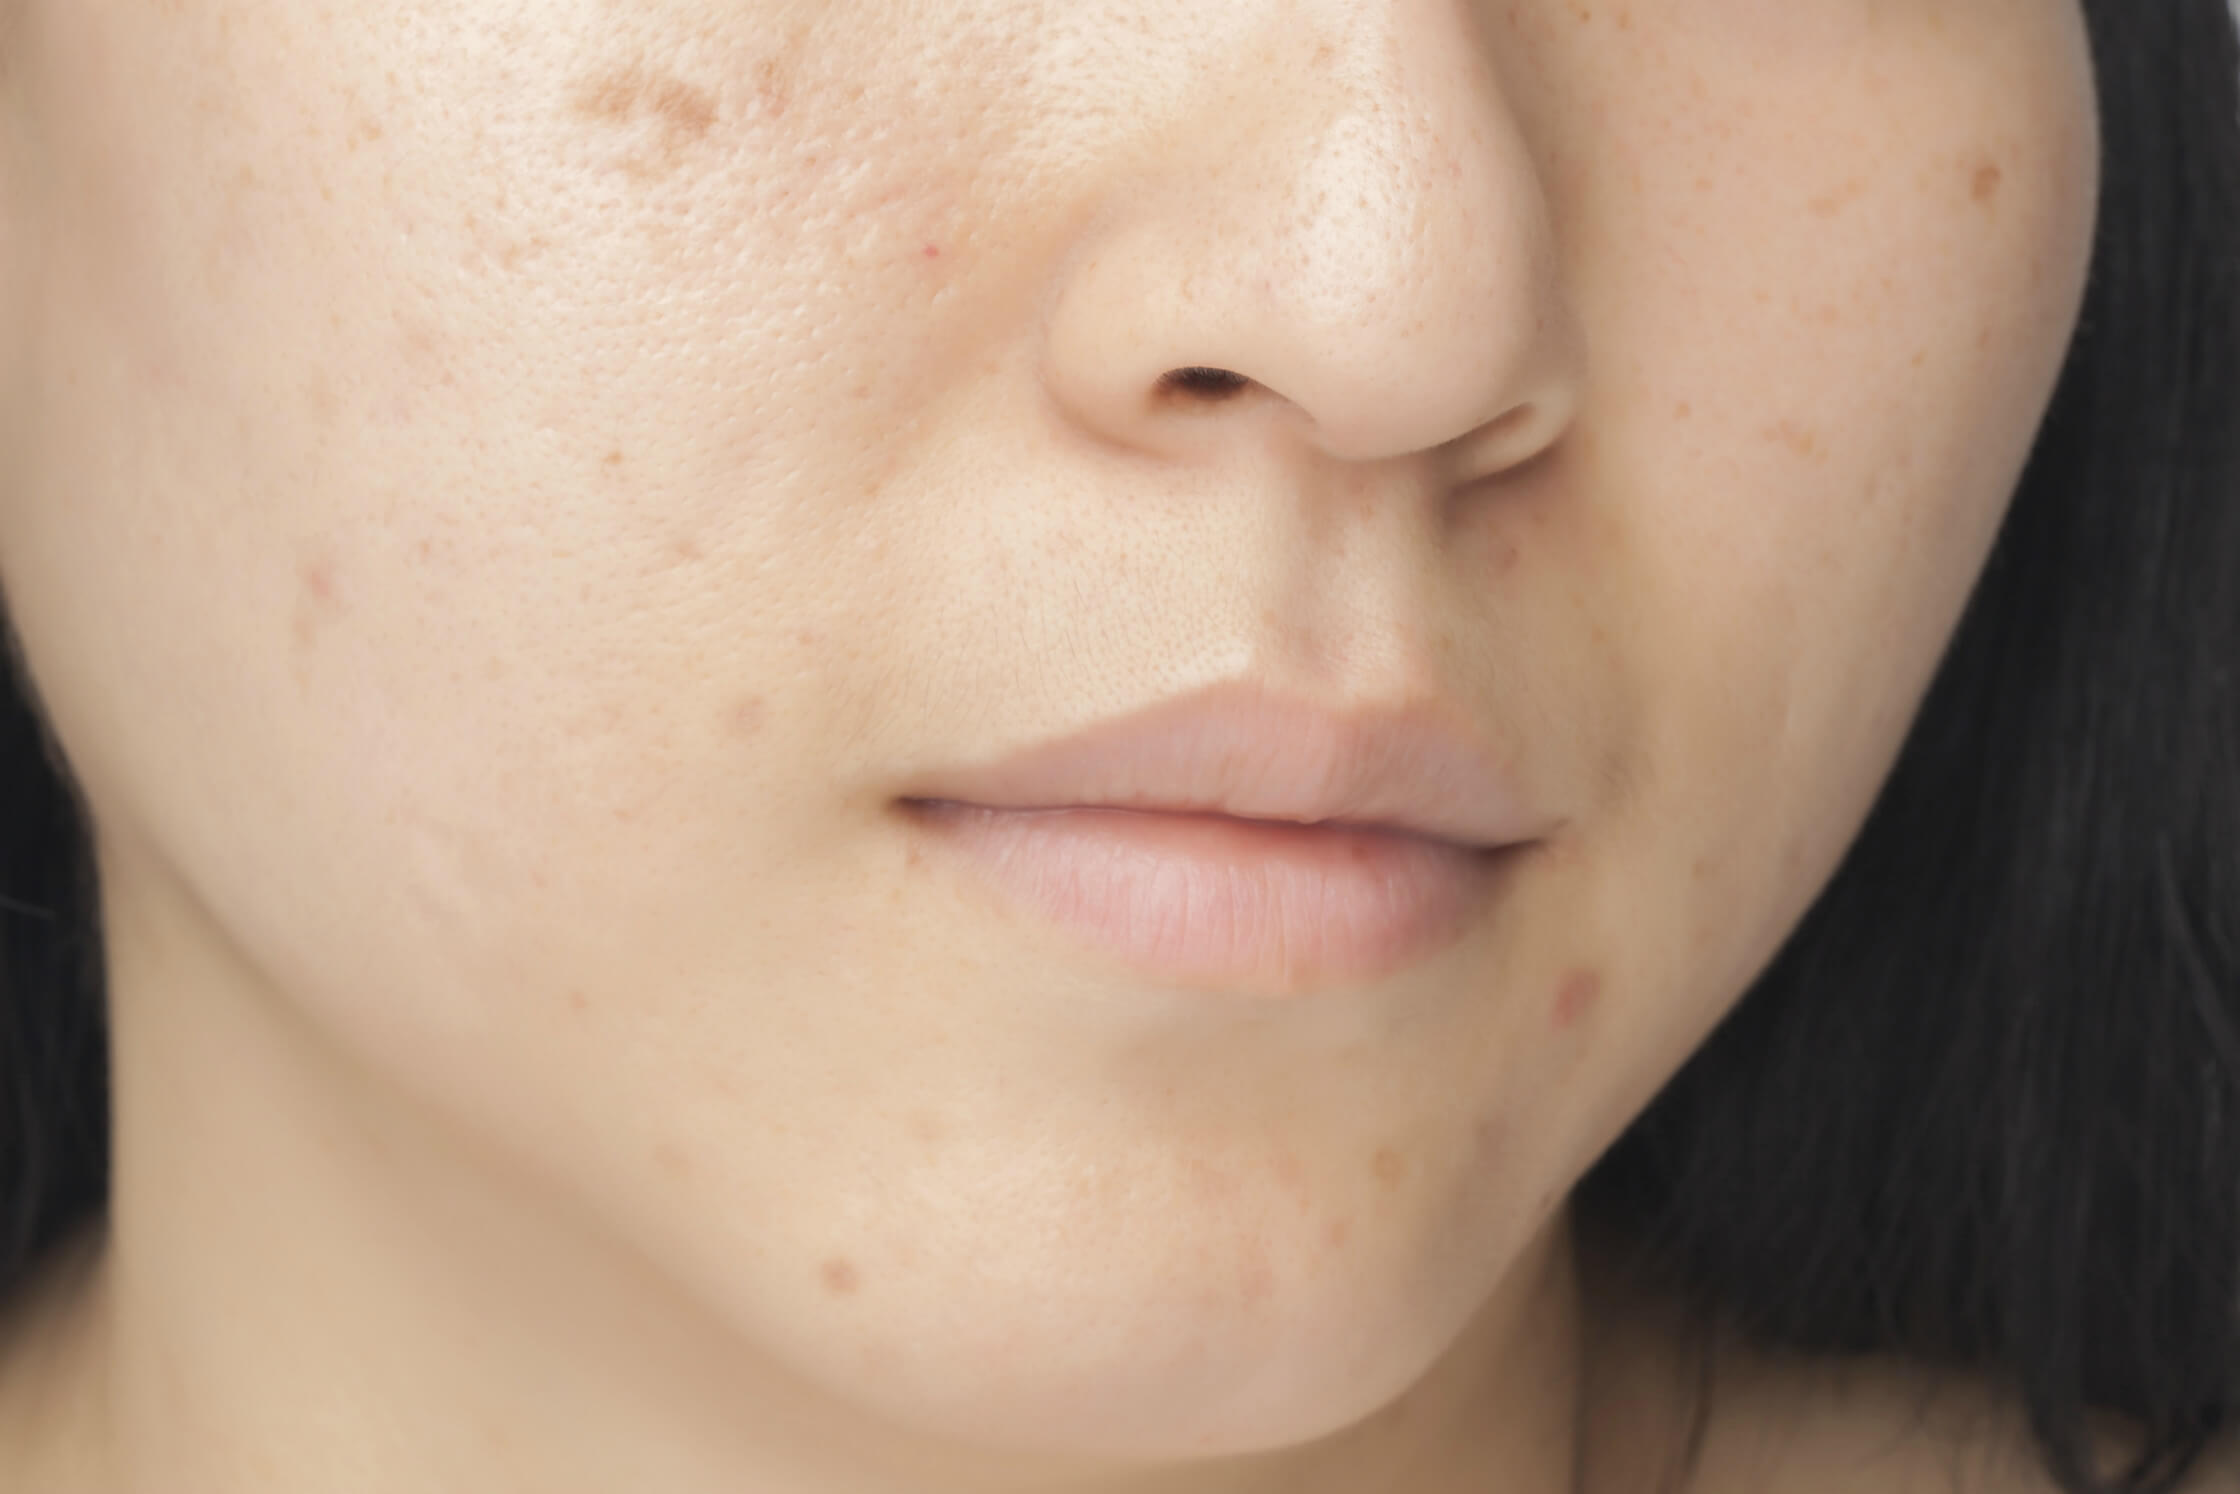 6 Things You Can Do to Reverse Sun Damage